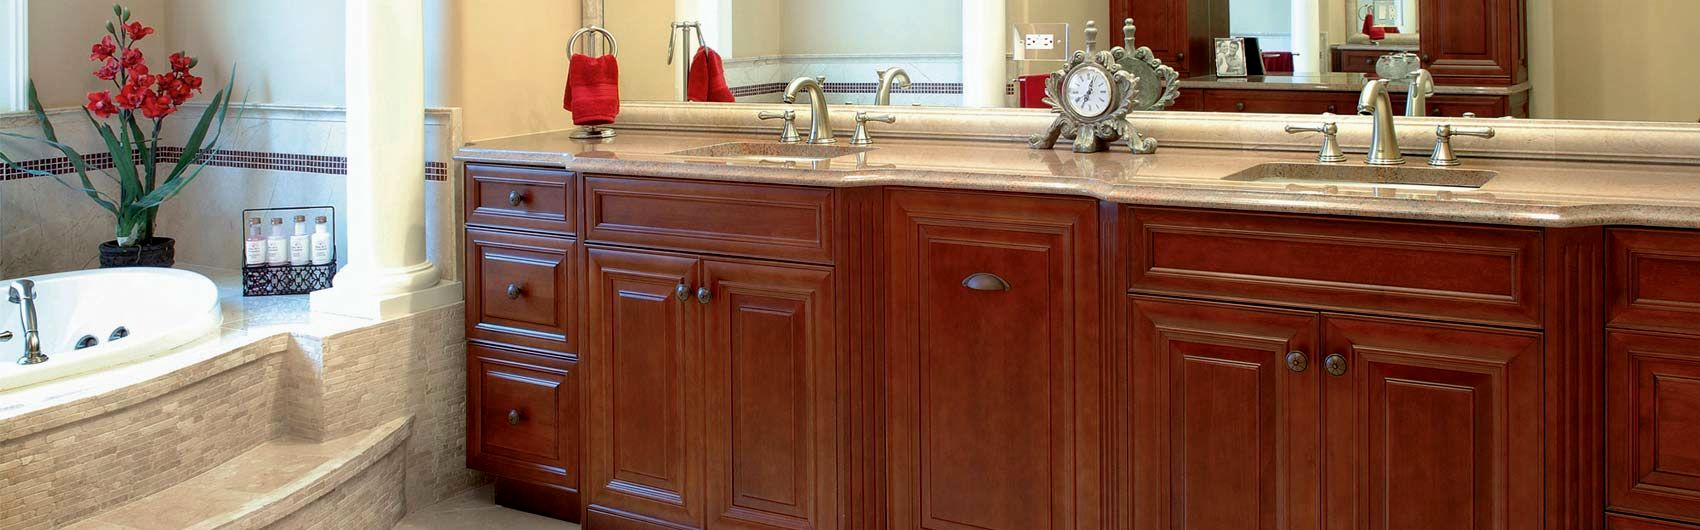 wonderful bathroom vanities online wallpaper-Elegant Bathroom Vanities Online Image